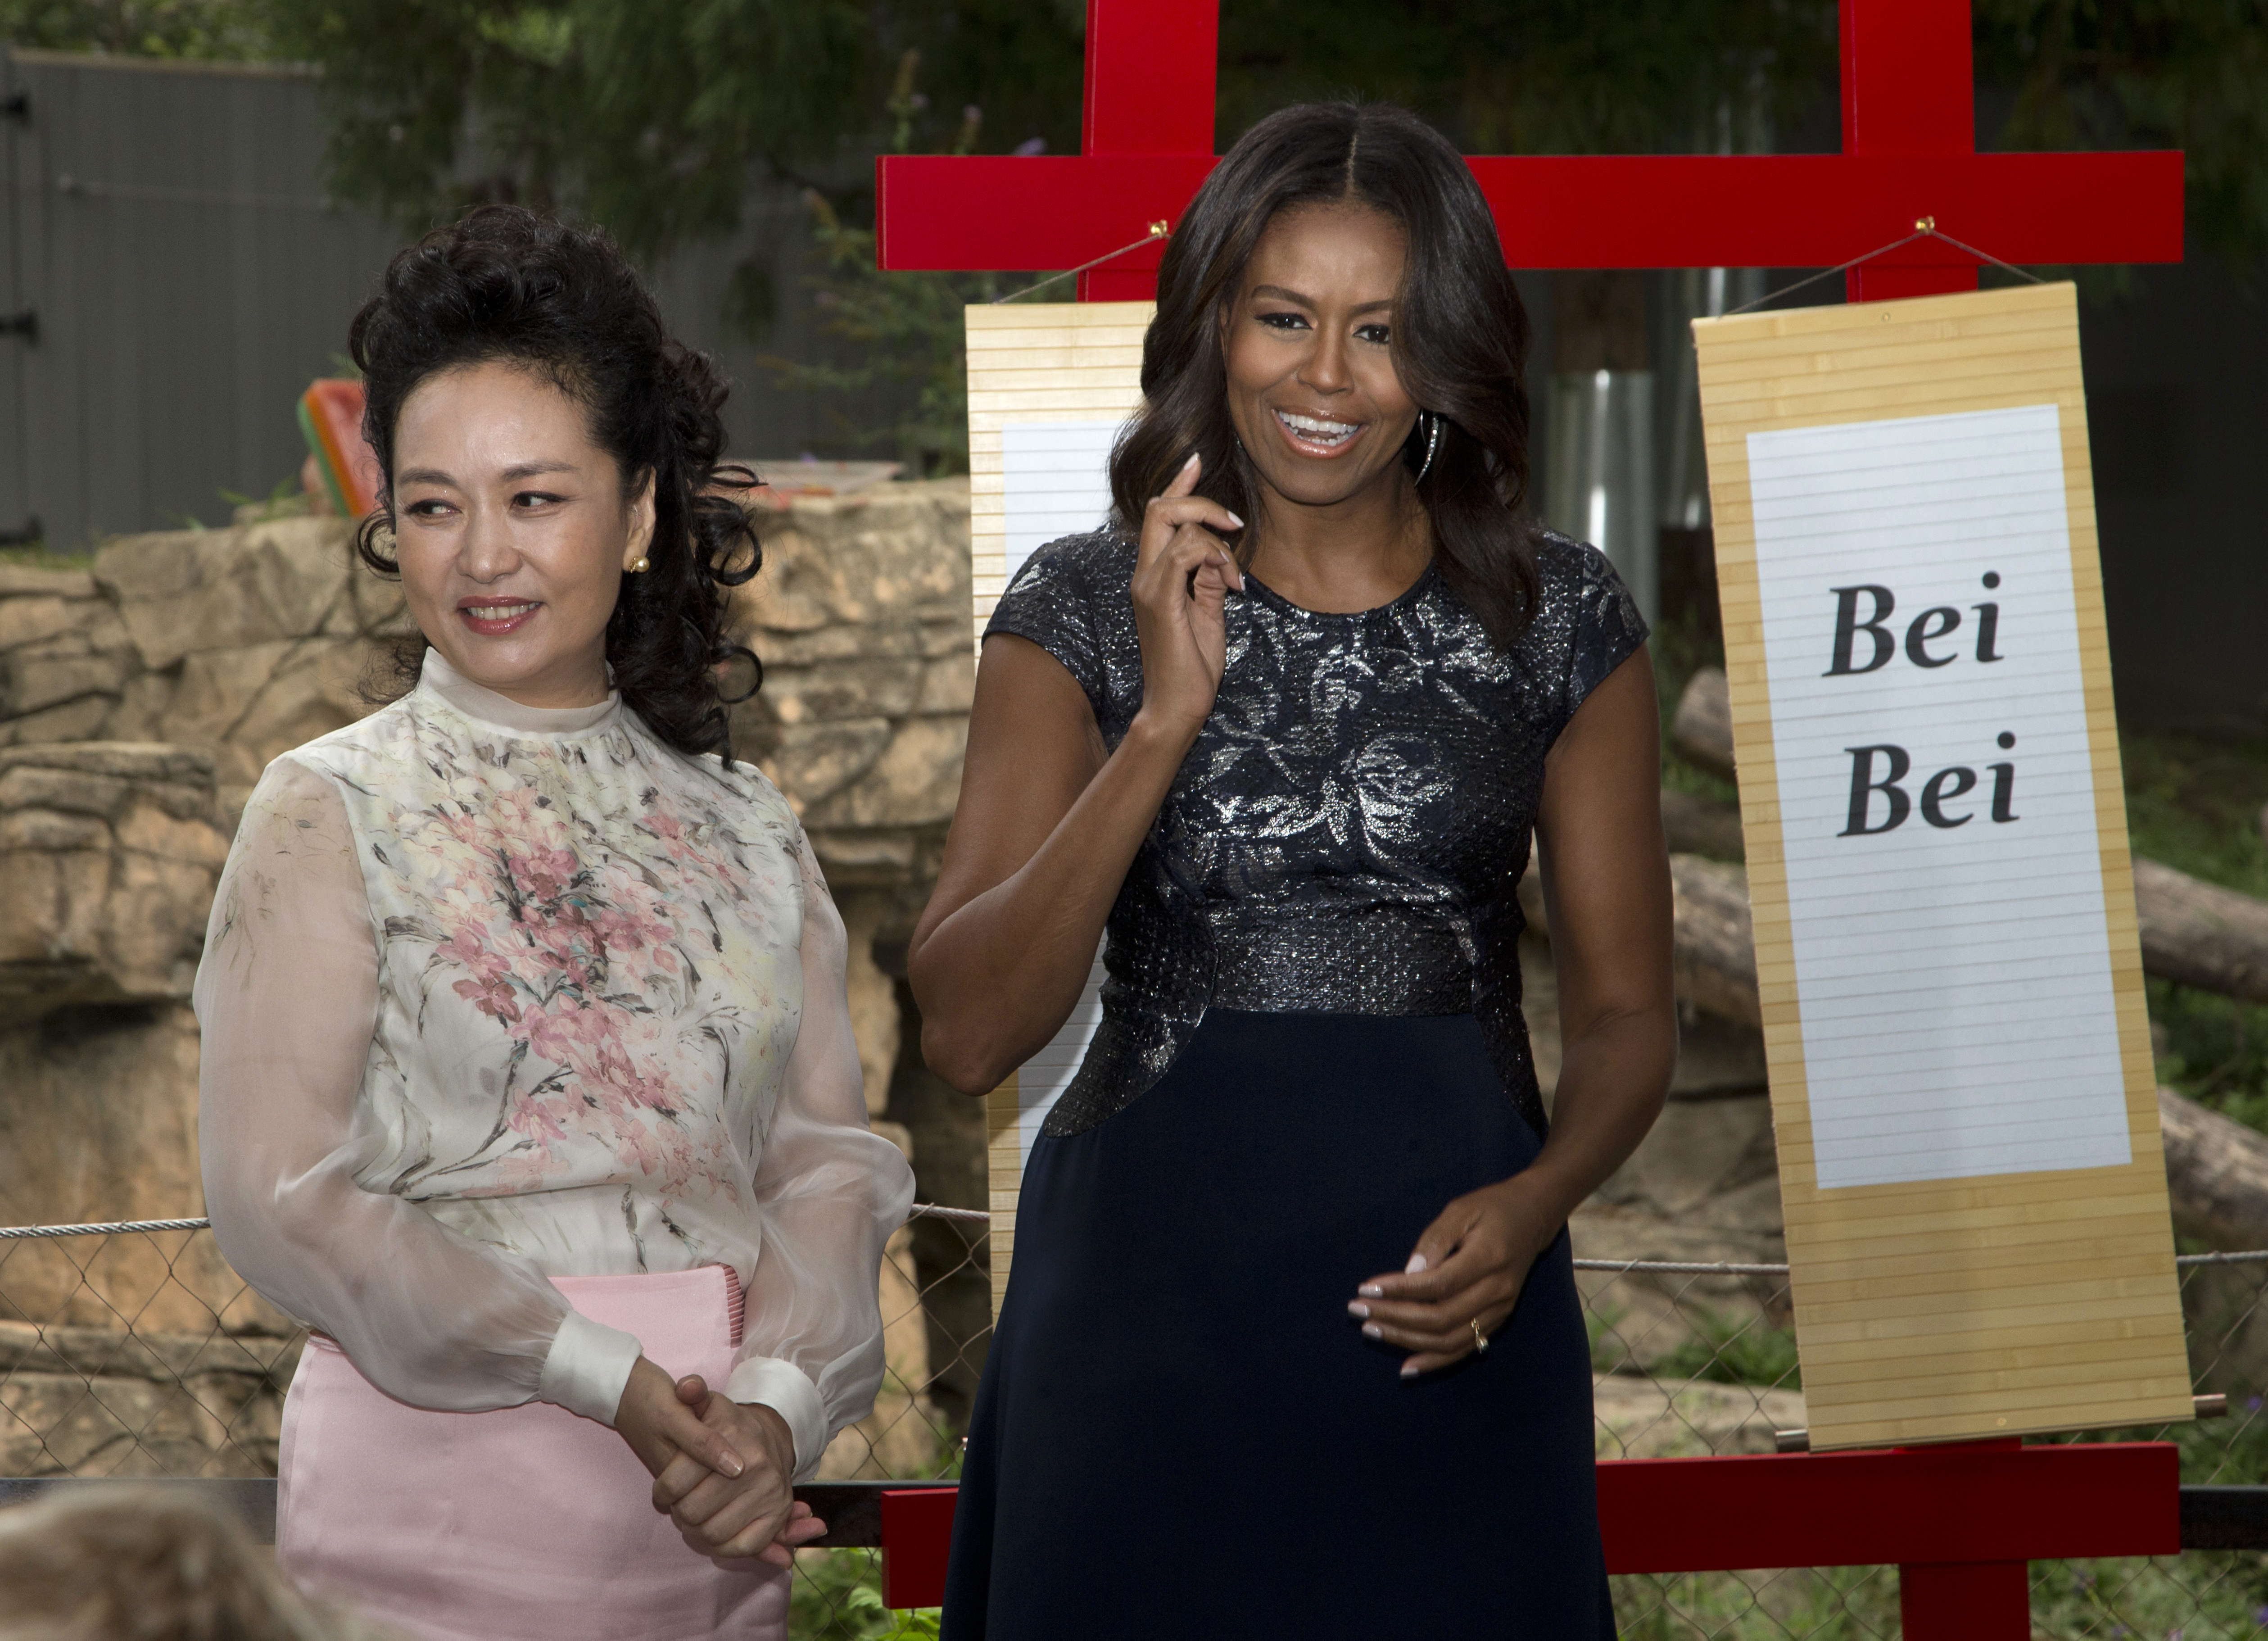 First lady Michelle Obama and China's first lady Peng Liyuan unfurled scrolls to announce panda Bei Bei's name on Sept. 22, 2015